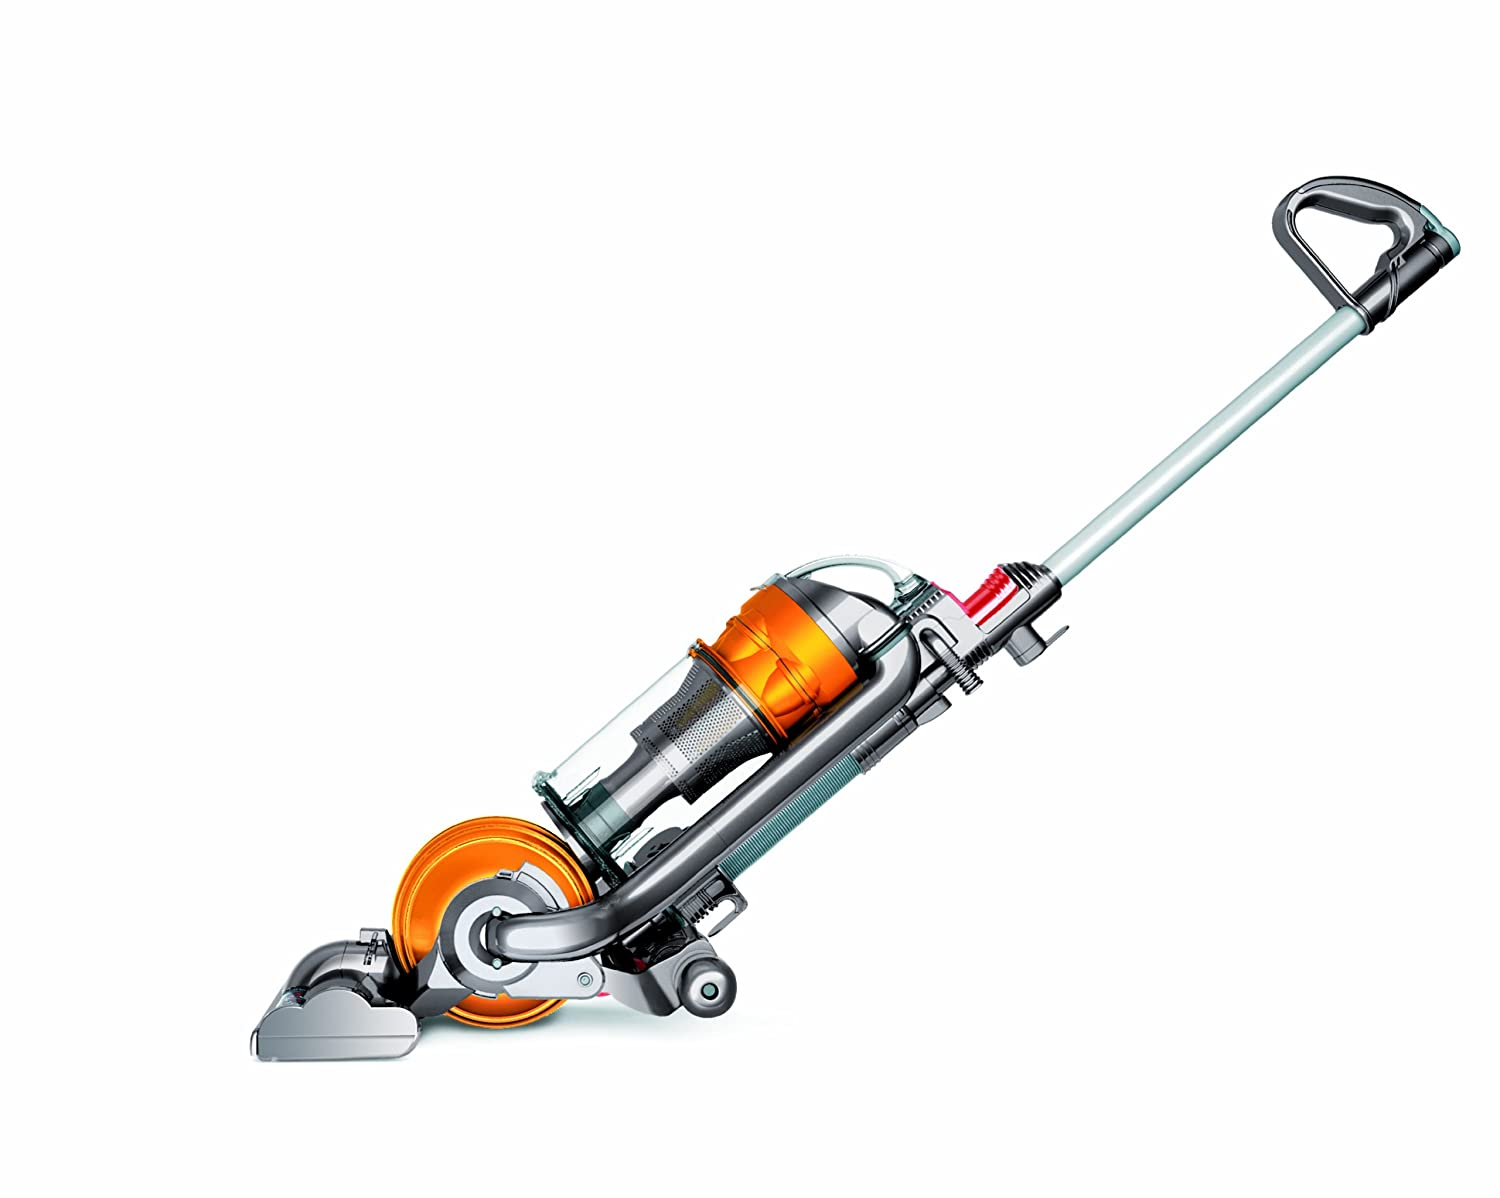 Amazon.com - Dyson DC24 Ball All-Floors Upright Vacuum Cleaner - Household  Upright Vacuums